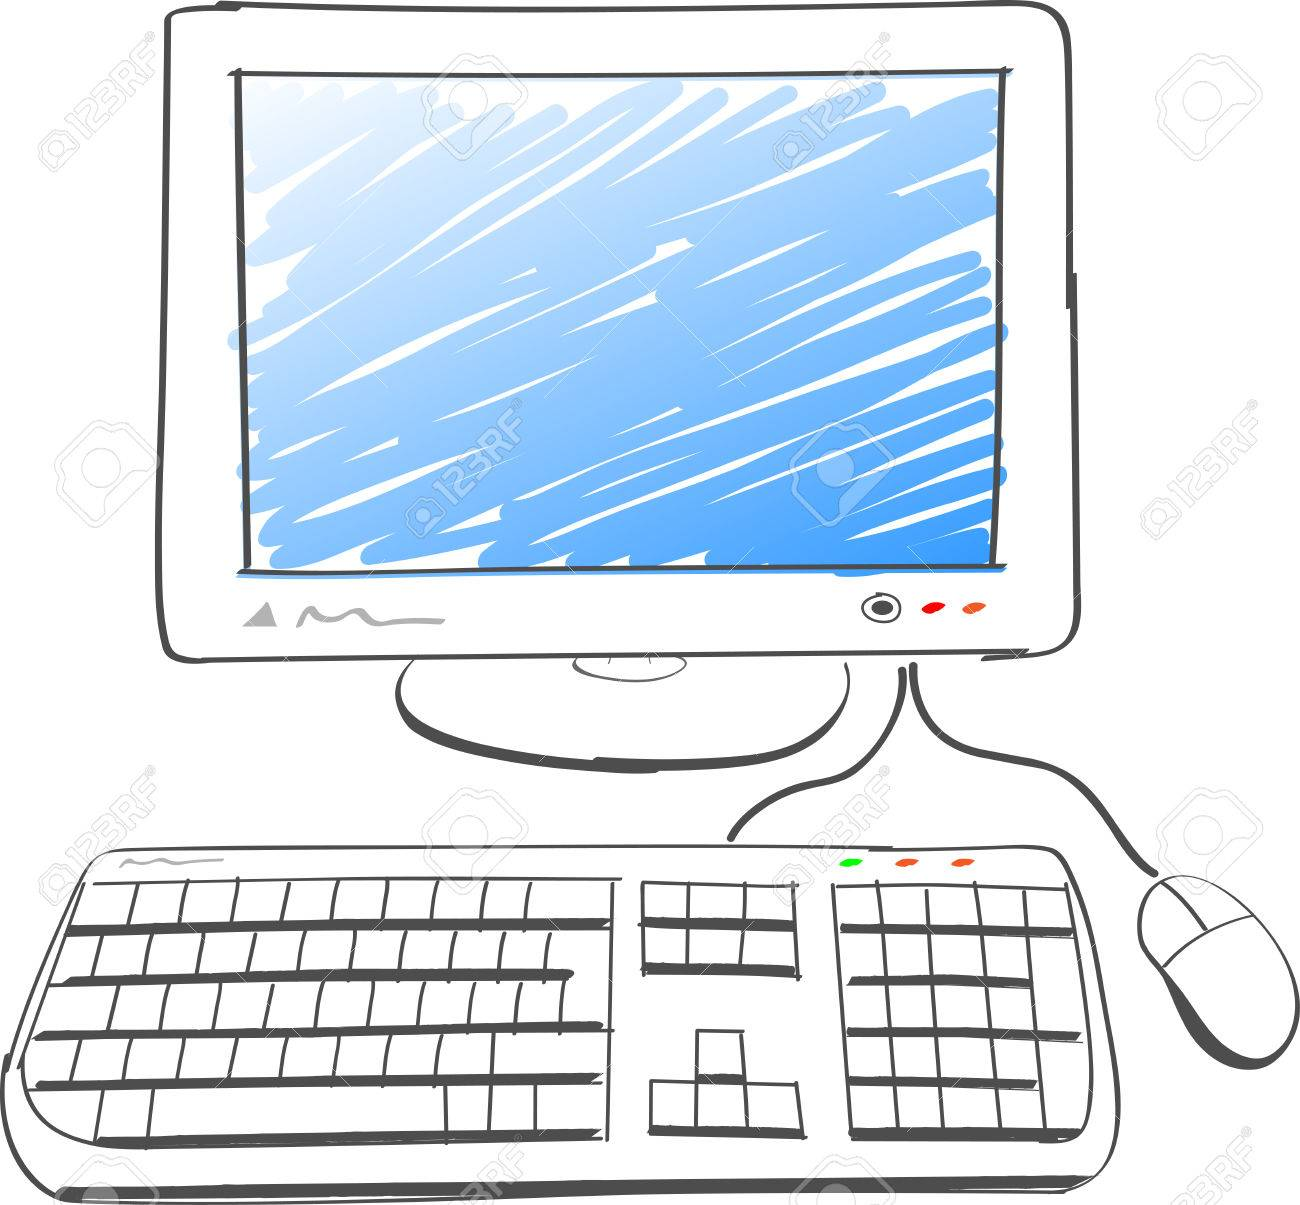 1300x1205 Illustration Of Computer Drawing On White Background Royalty Free